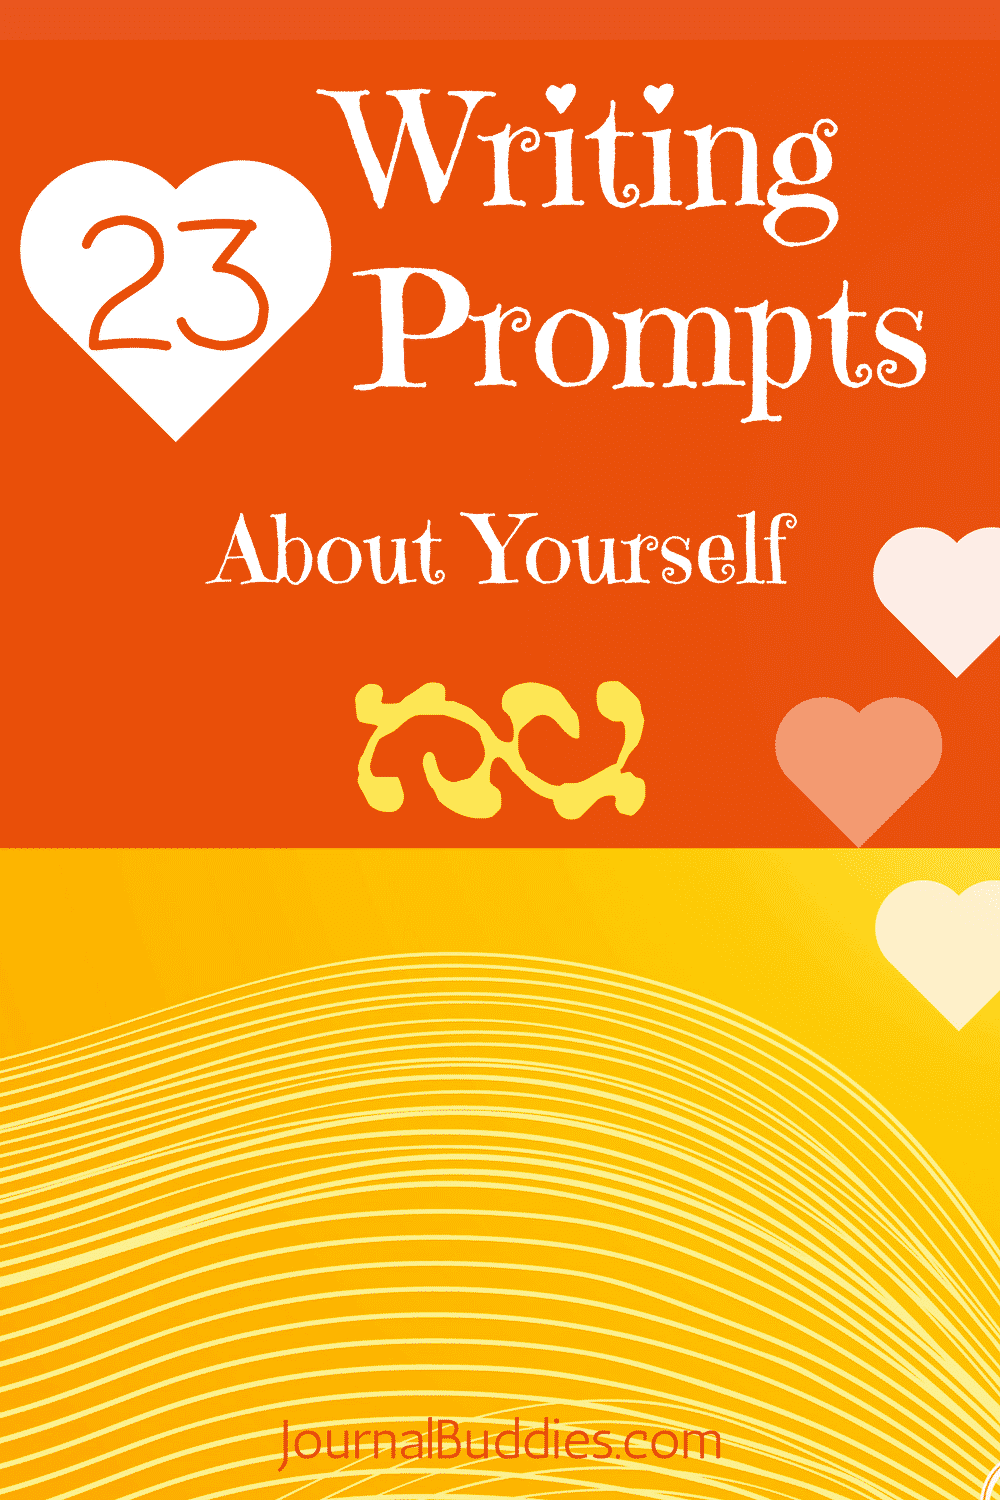 Writing Prompts about Yourself for Kids